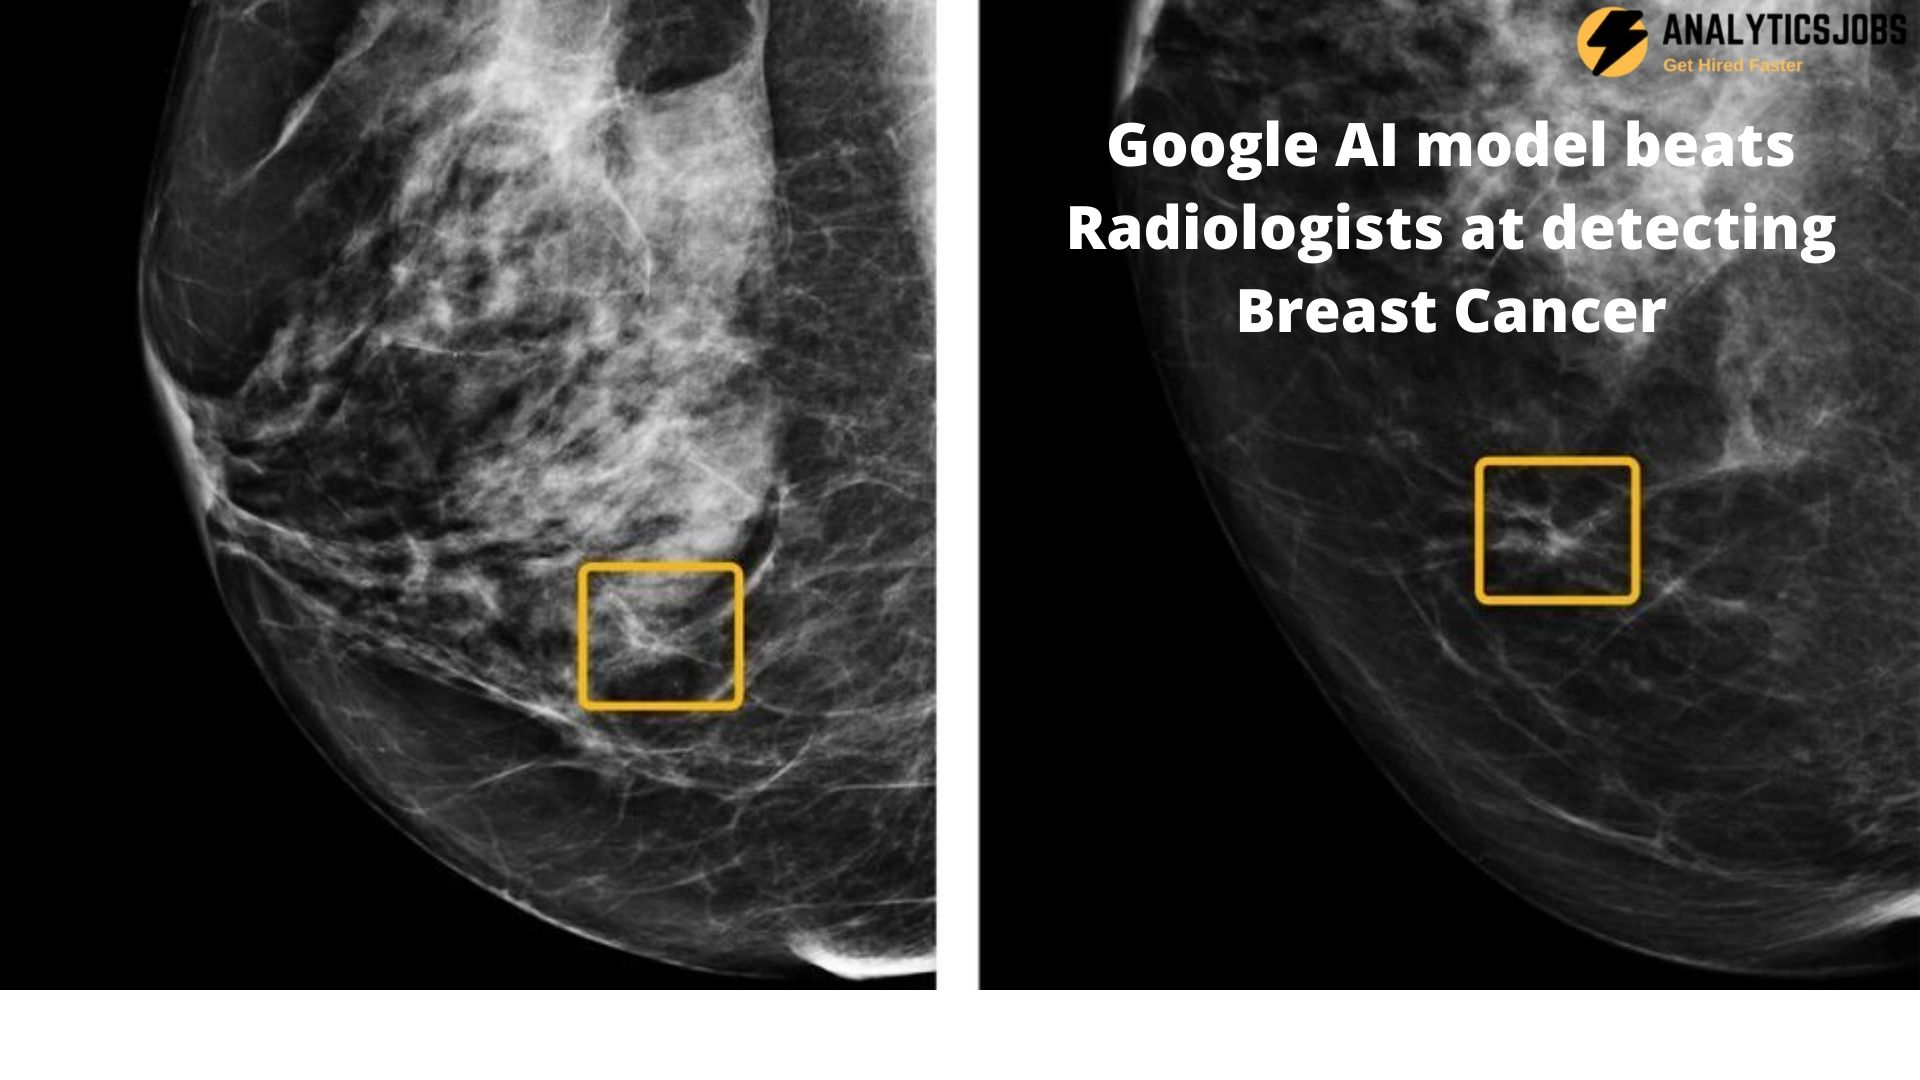 Google AI Model Detects Breast Cancer better than Radiologists